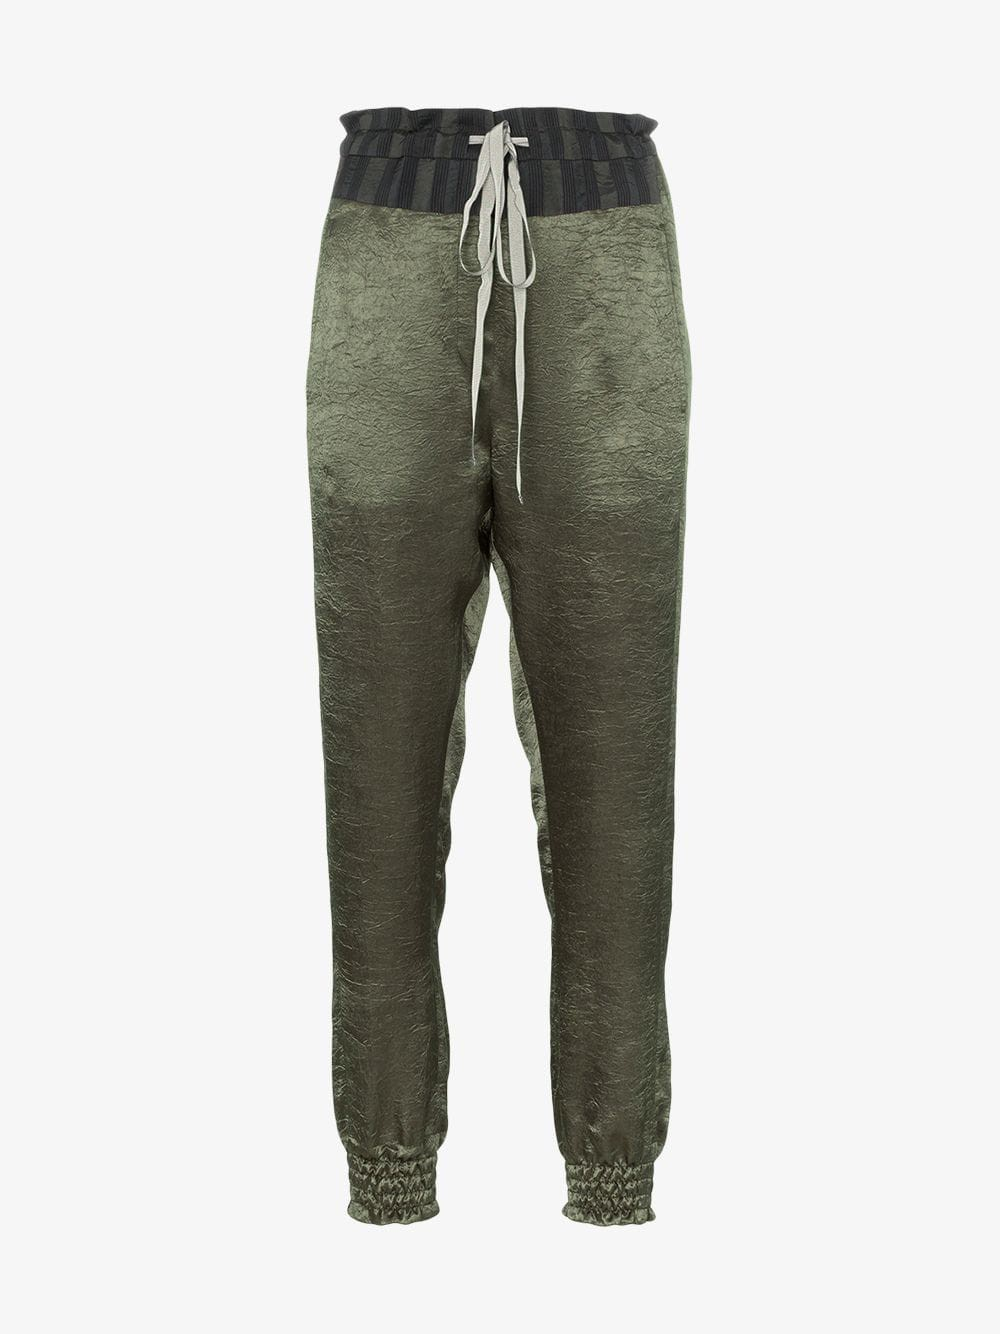 Ann Demeulemeester high-waisted drawstring trousers in green